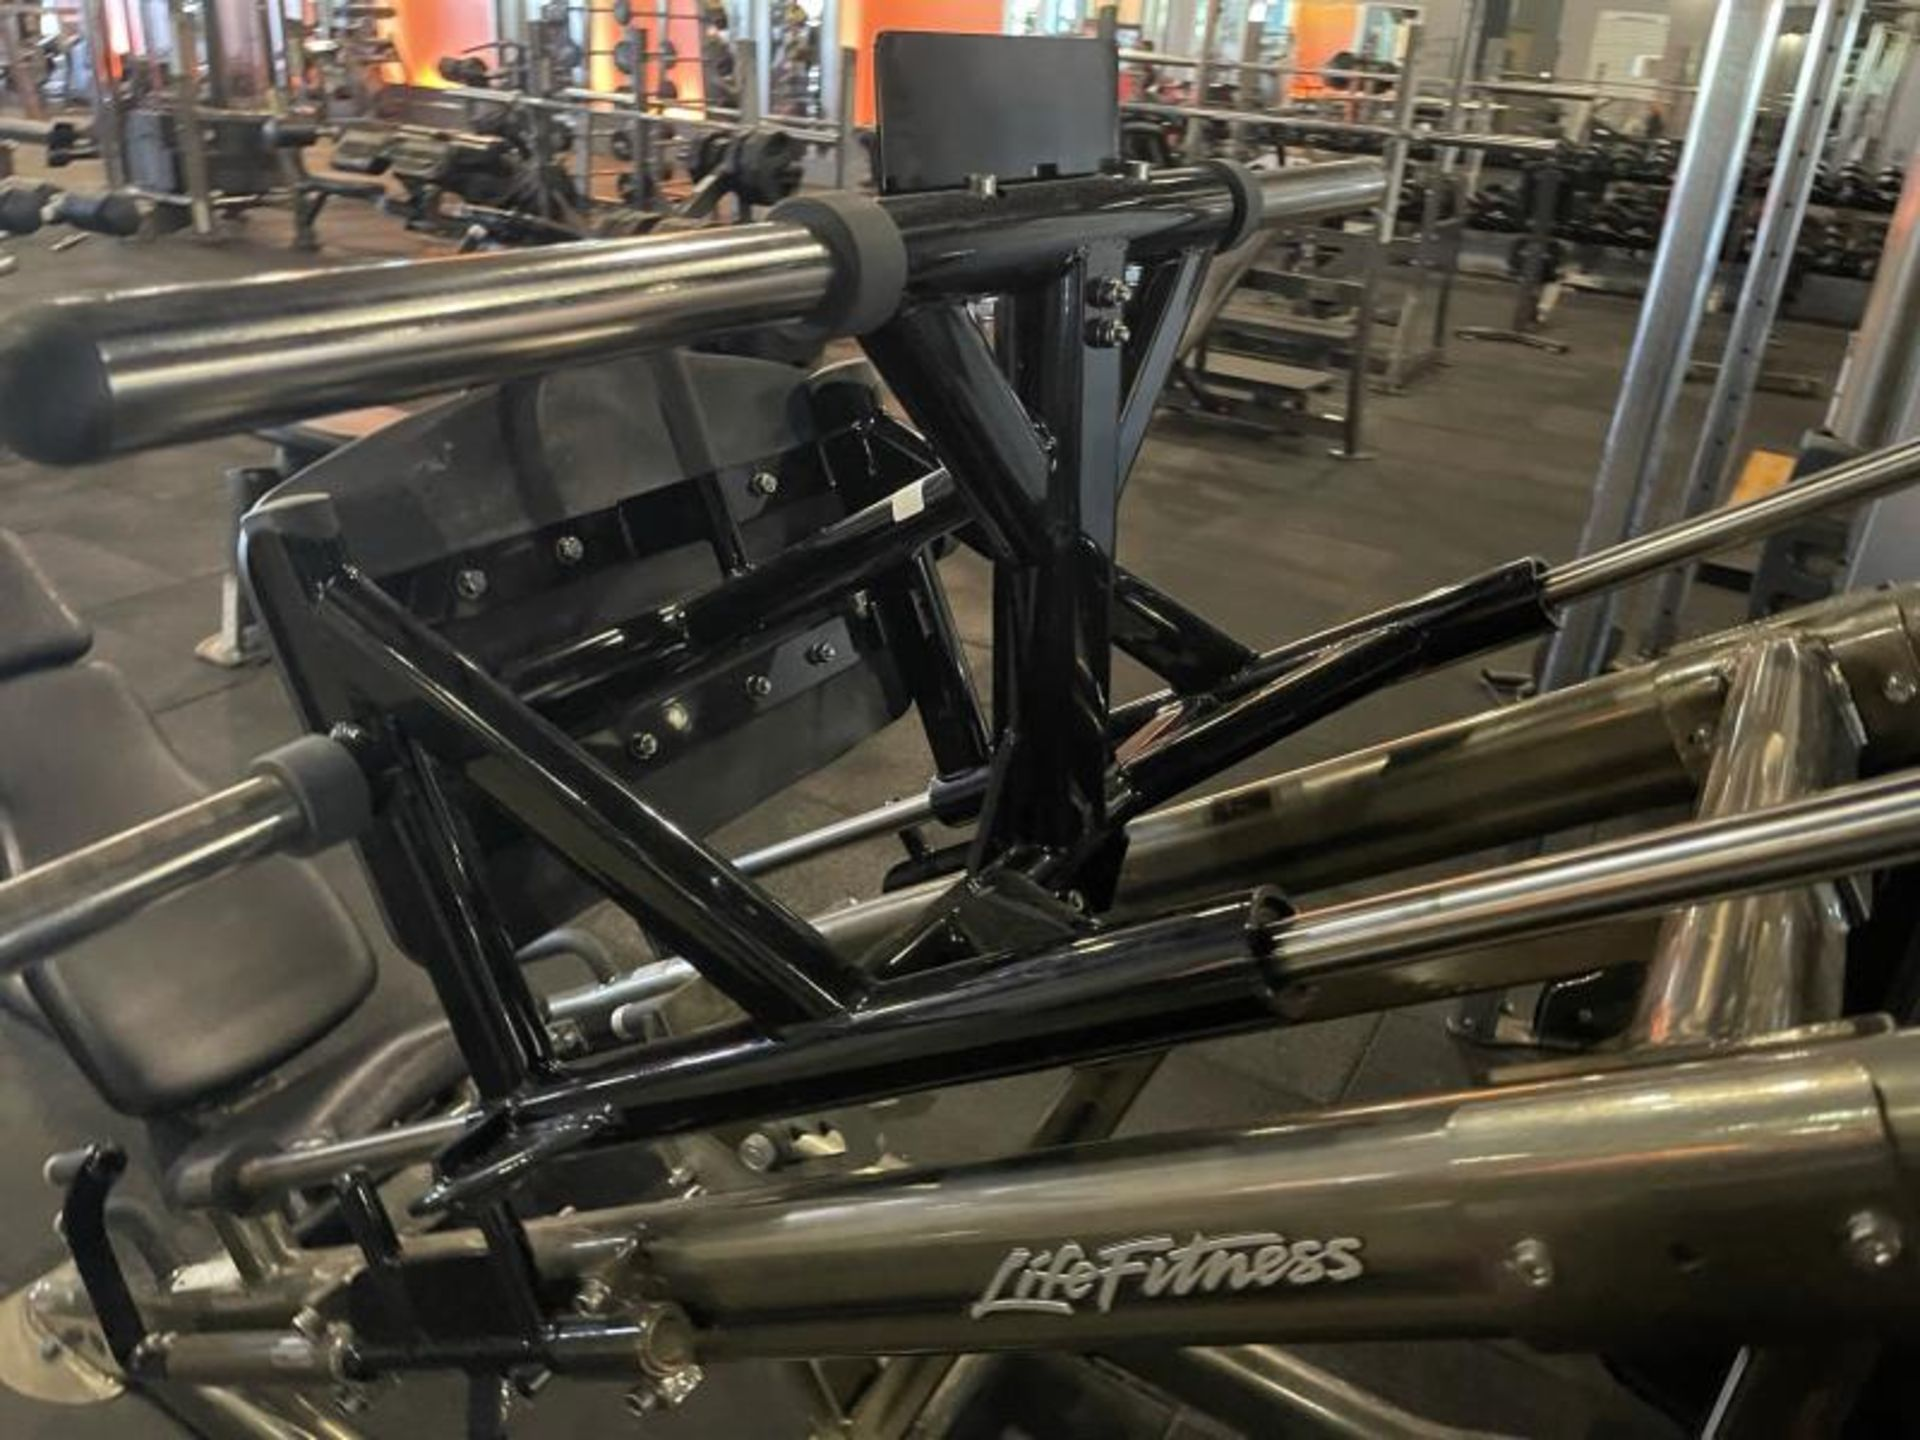 Life Fitness Linear Leg Press with Iron Grip Weighted Plates M: SPLLLP - Image 4 of 9